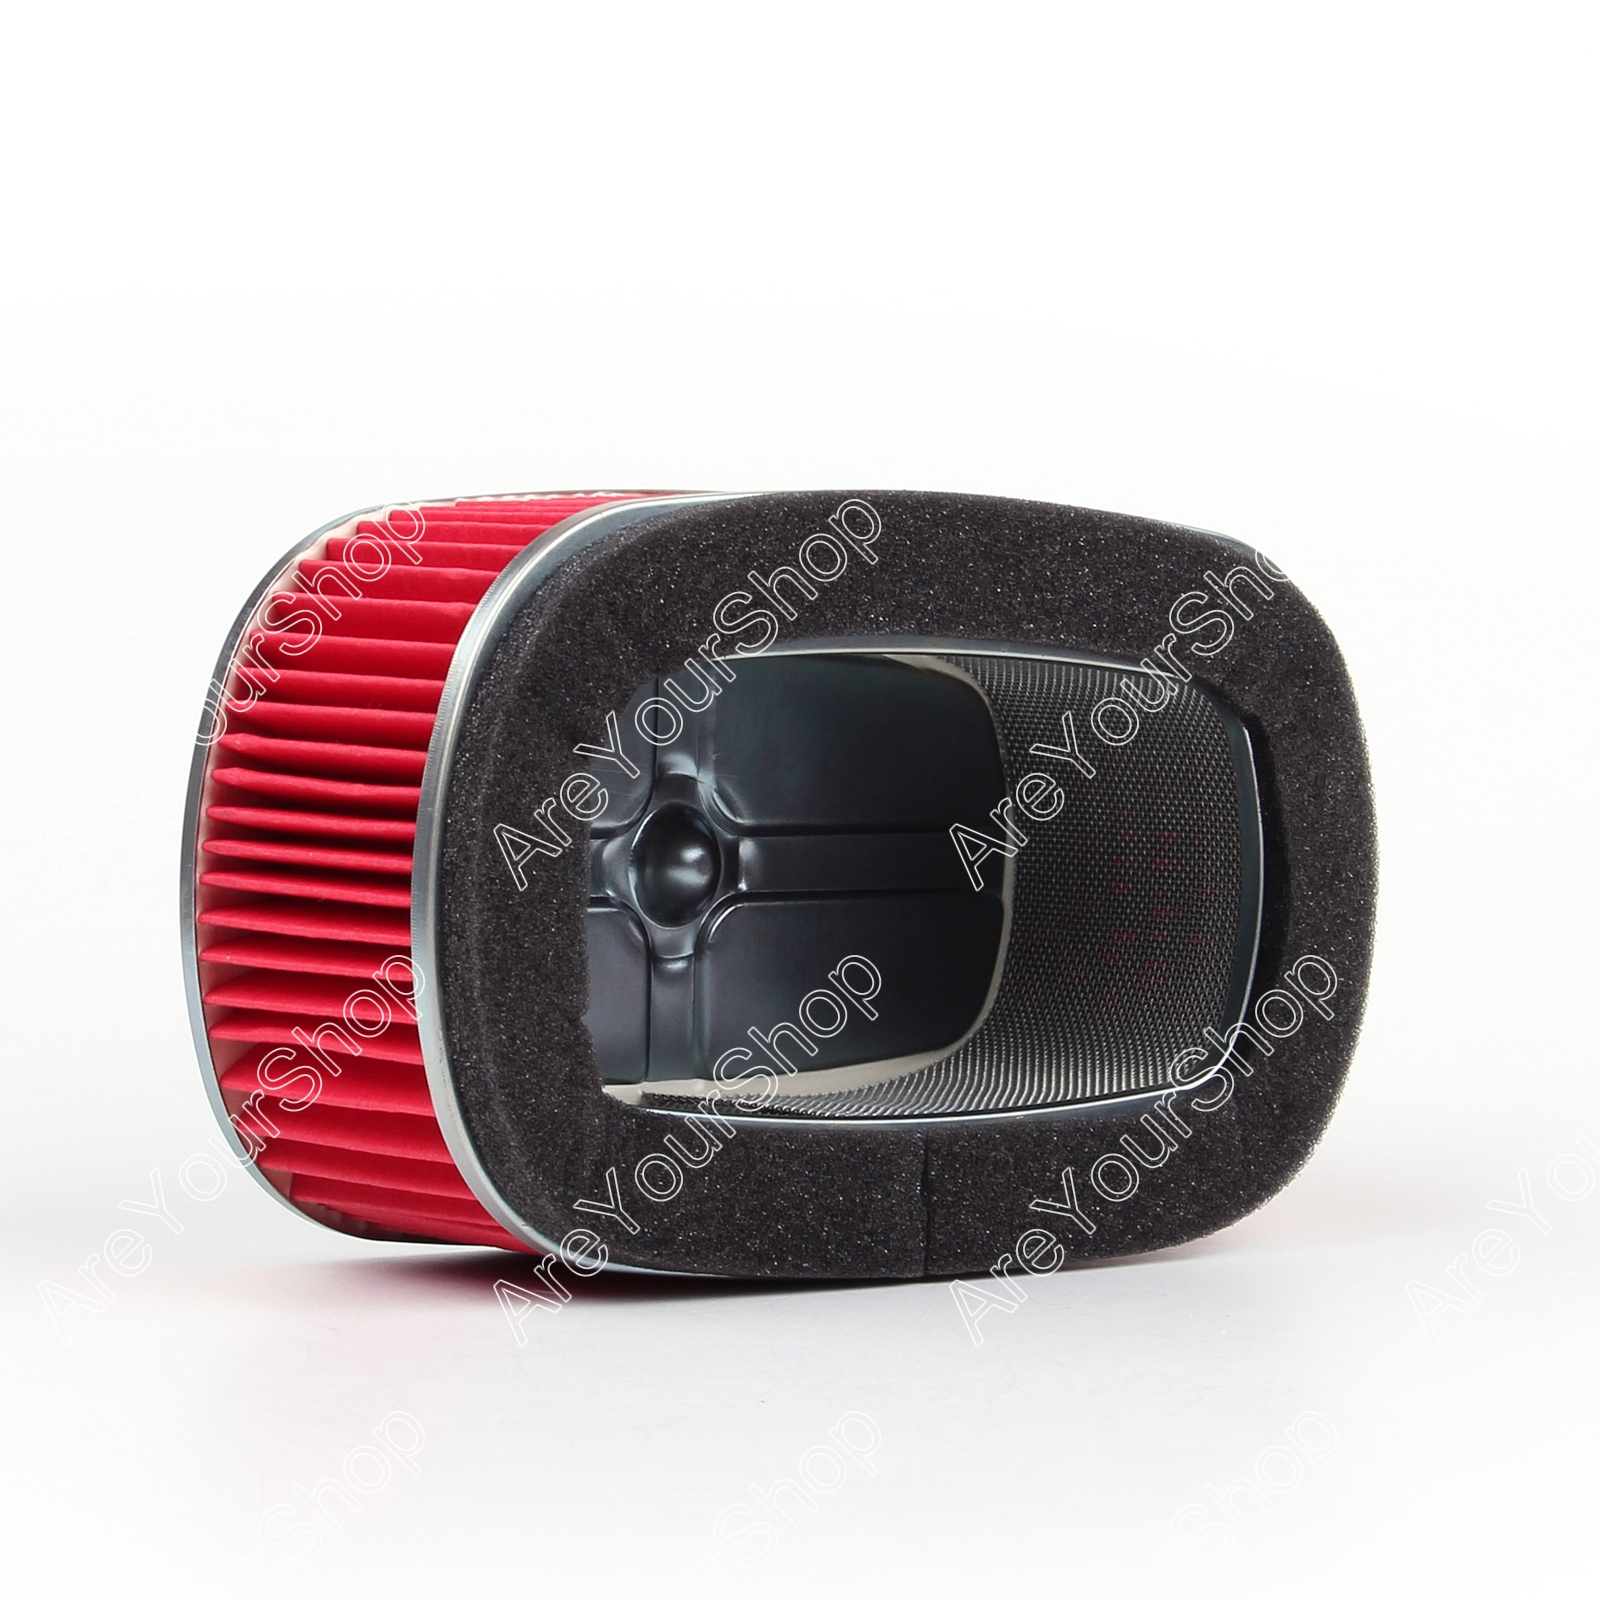 Sale For Honda XR250 XR250R XR350 XR350R XR400 XR600 Motorcycle Air Filter Motorbike OEM Air Intake Aluminum